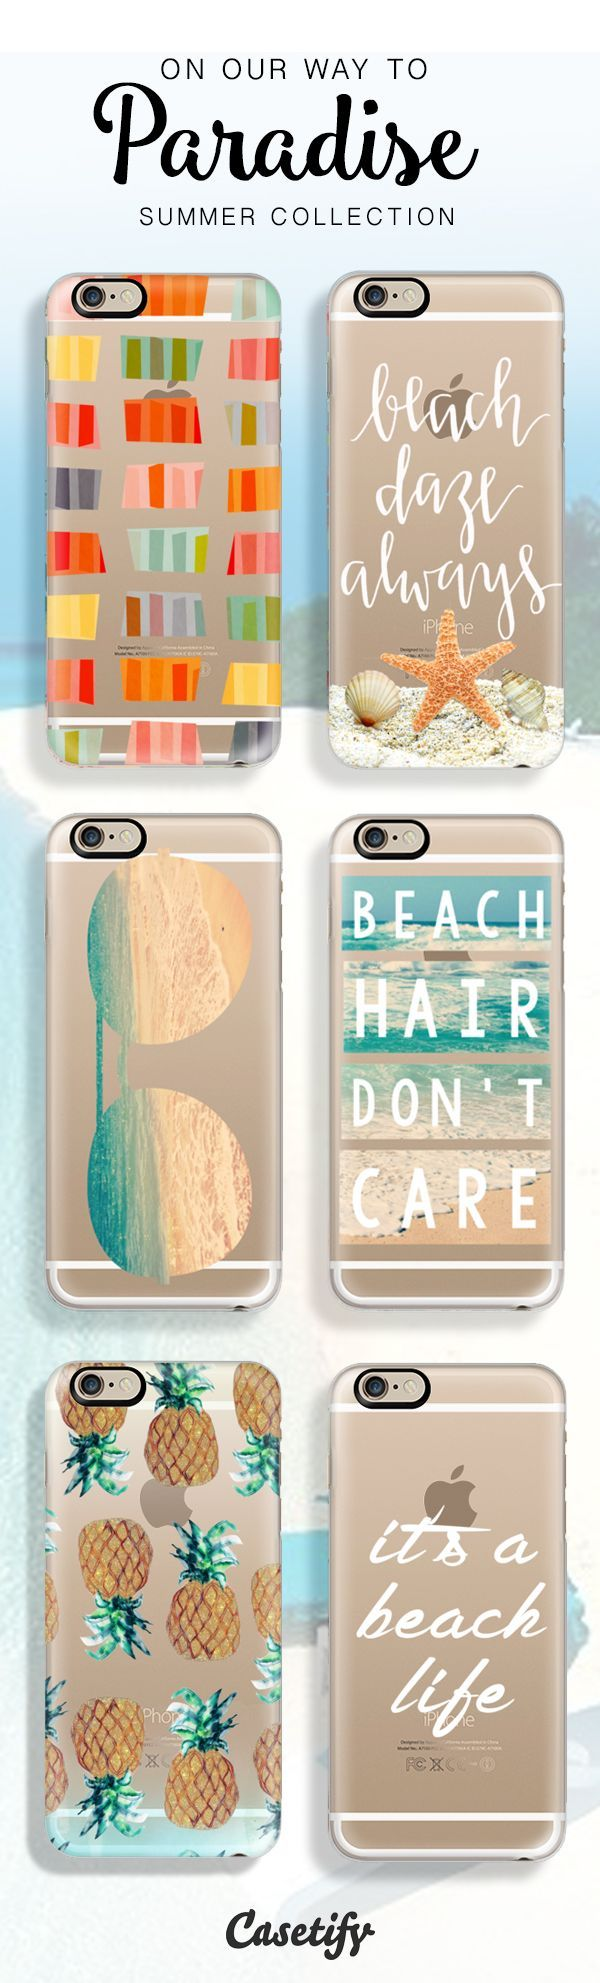 In Need of Some Vitamin Sea! Shop our beach ready phonecase designs now! Click Here: www.casetify.com/...